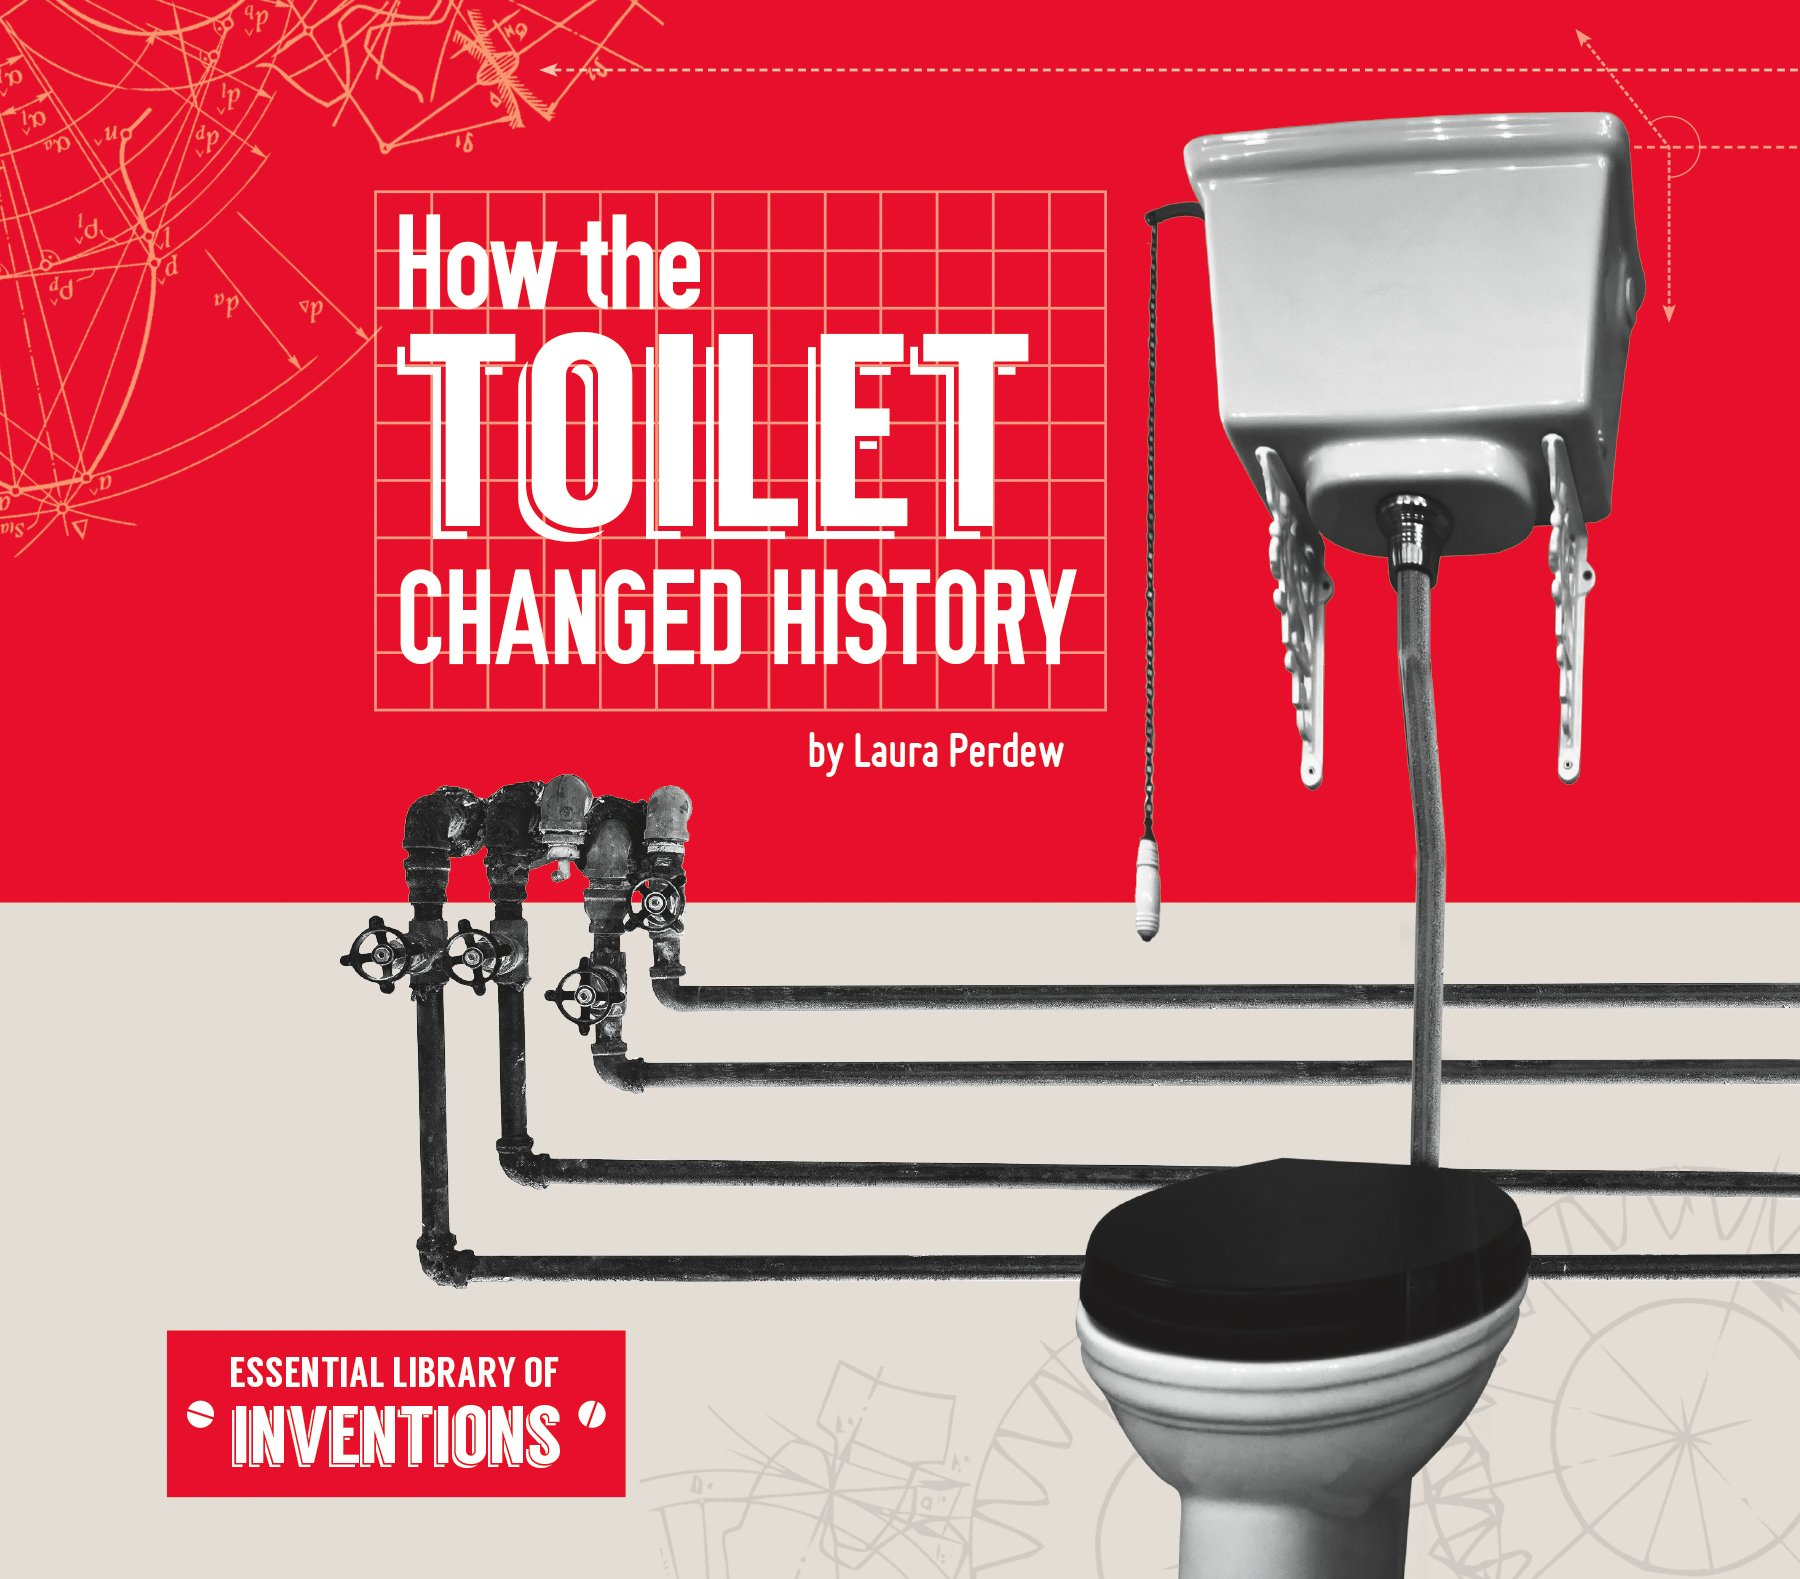 How the Toilet Changed History (Essential Library of Inventions)